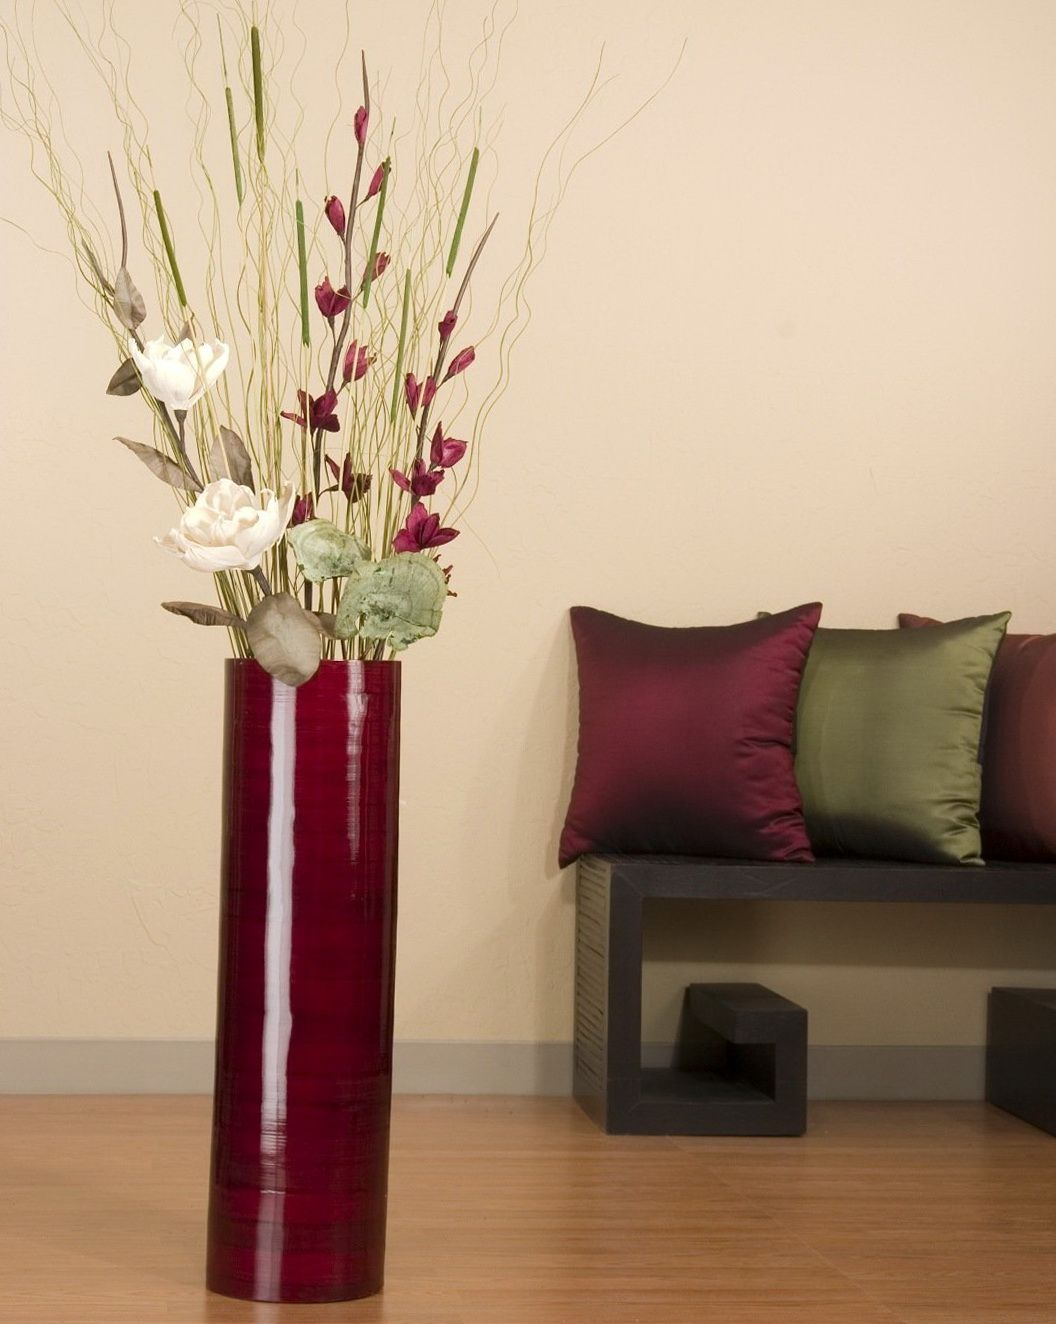 Tall Vases Home Decor Large Floor Vase With Flowers Decorations Pinterest